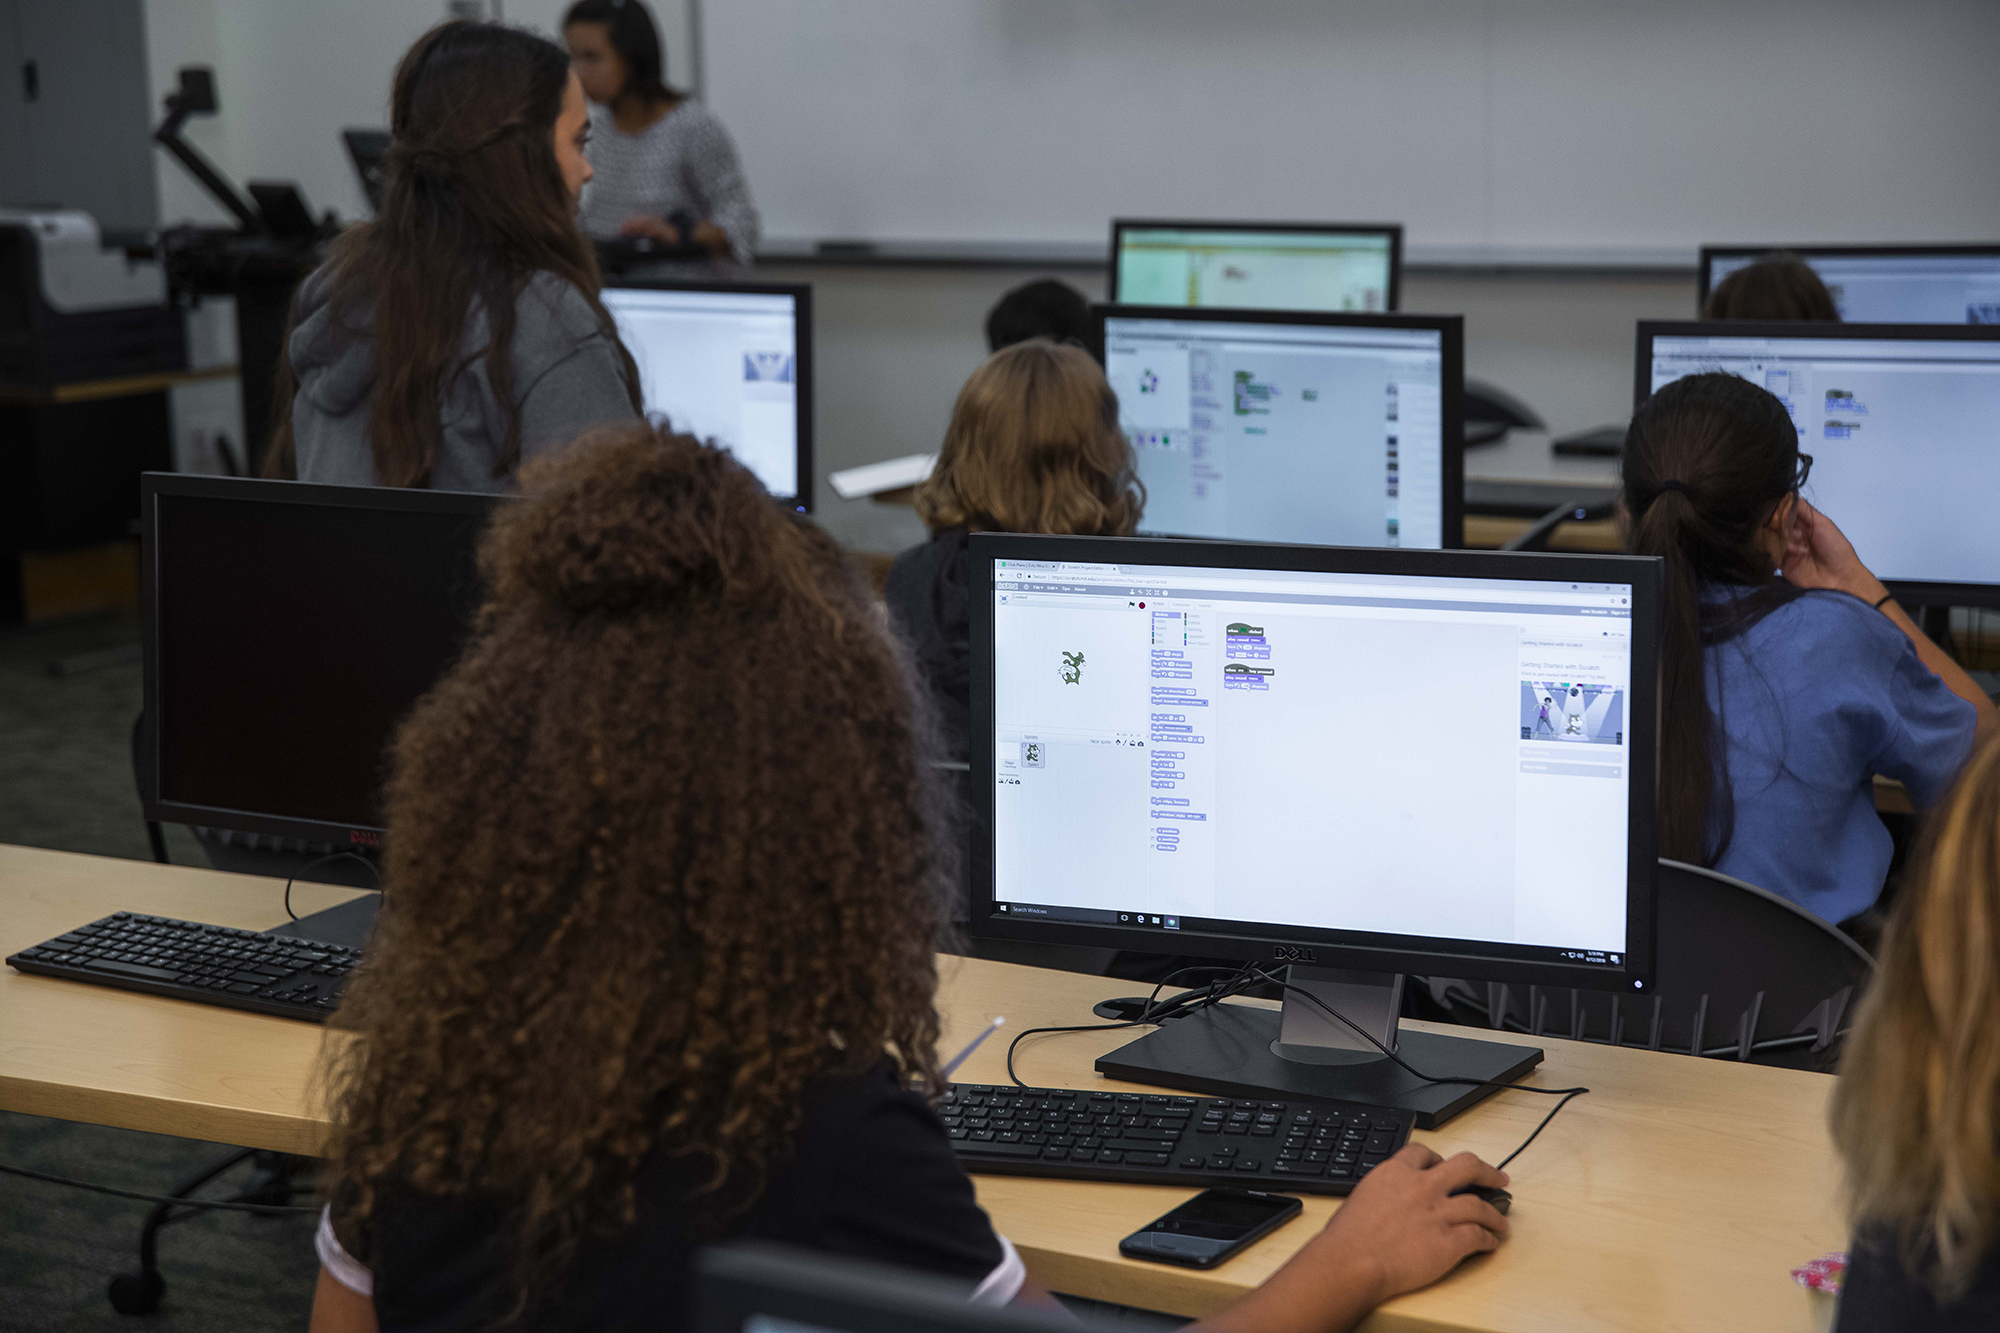 Group of students working on computers in a computer lab